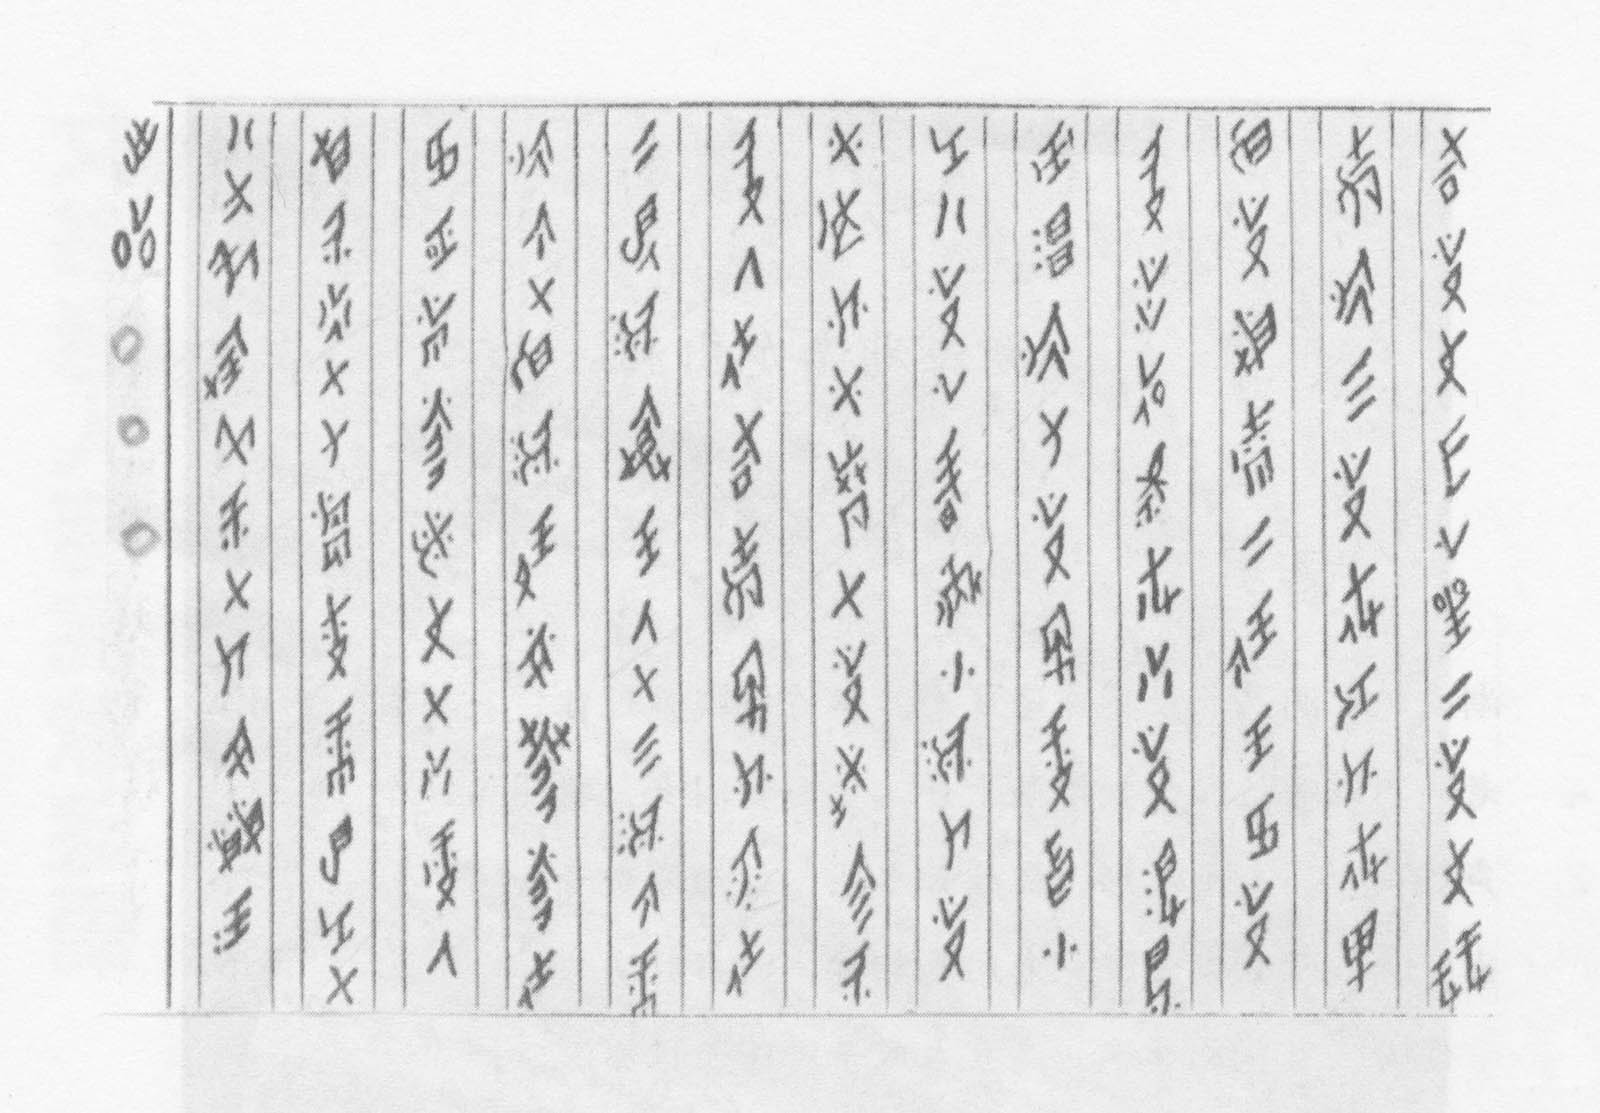 Gao Yinxian's handwriting